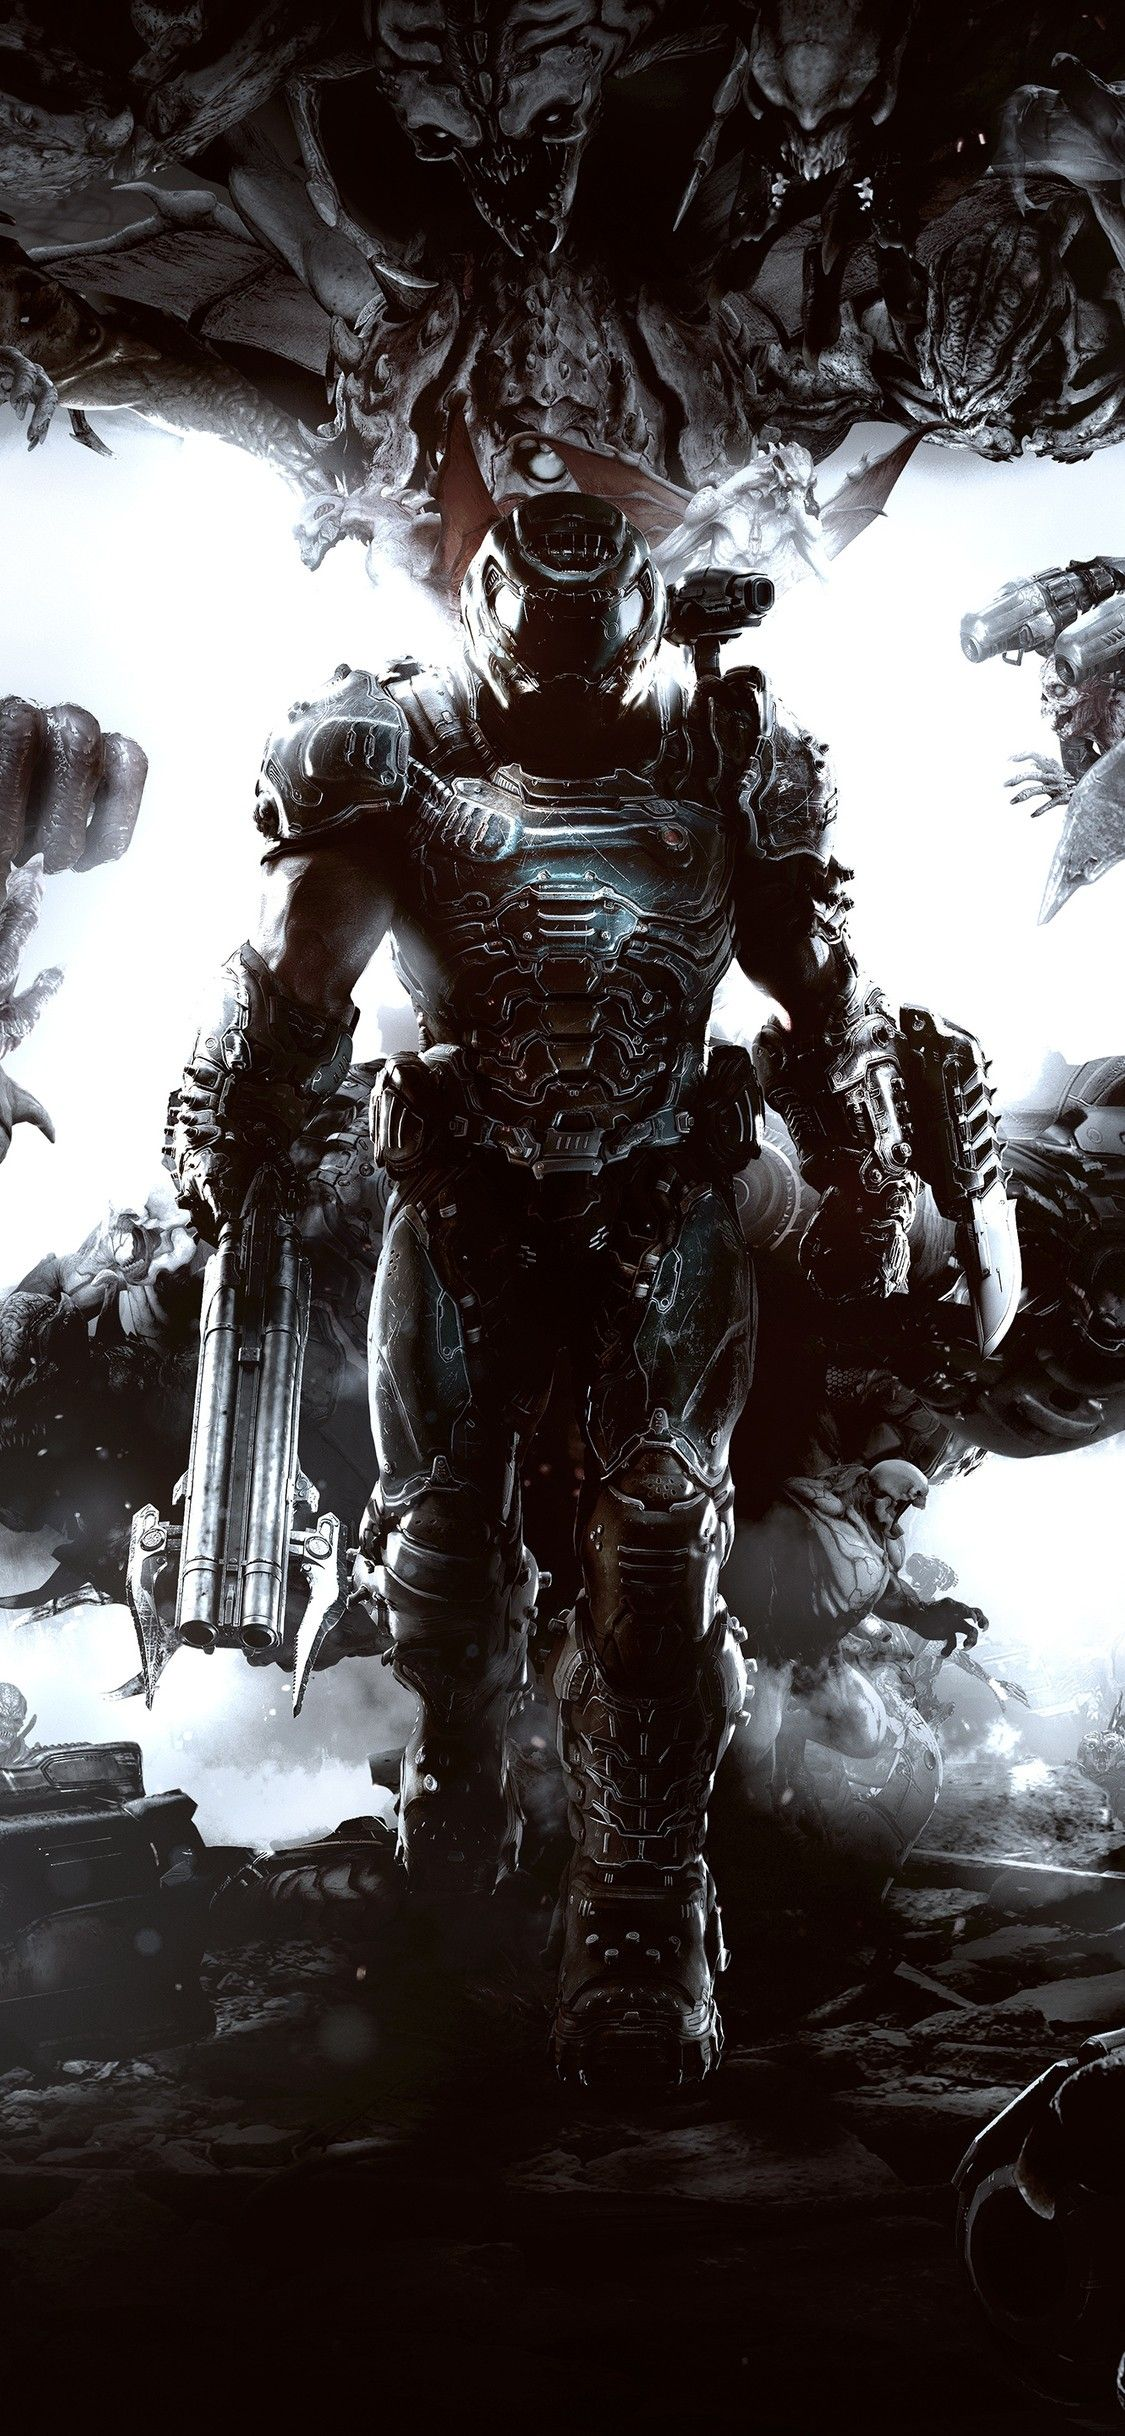 Best Of Doom iPhone Wallpaper Check more at https